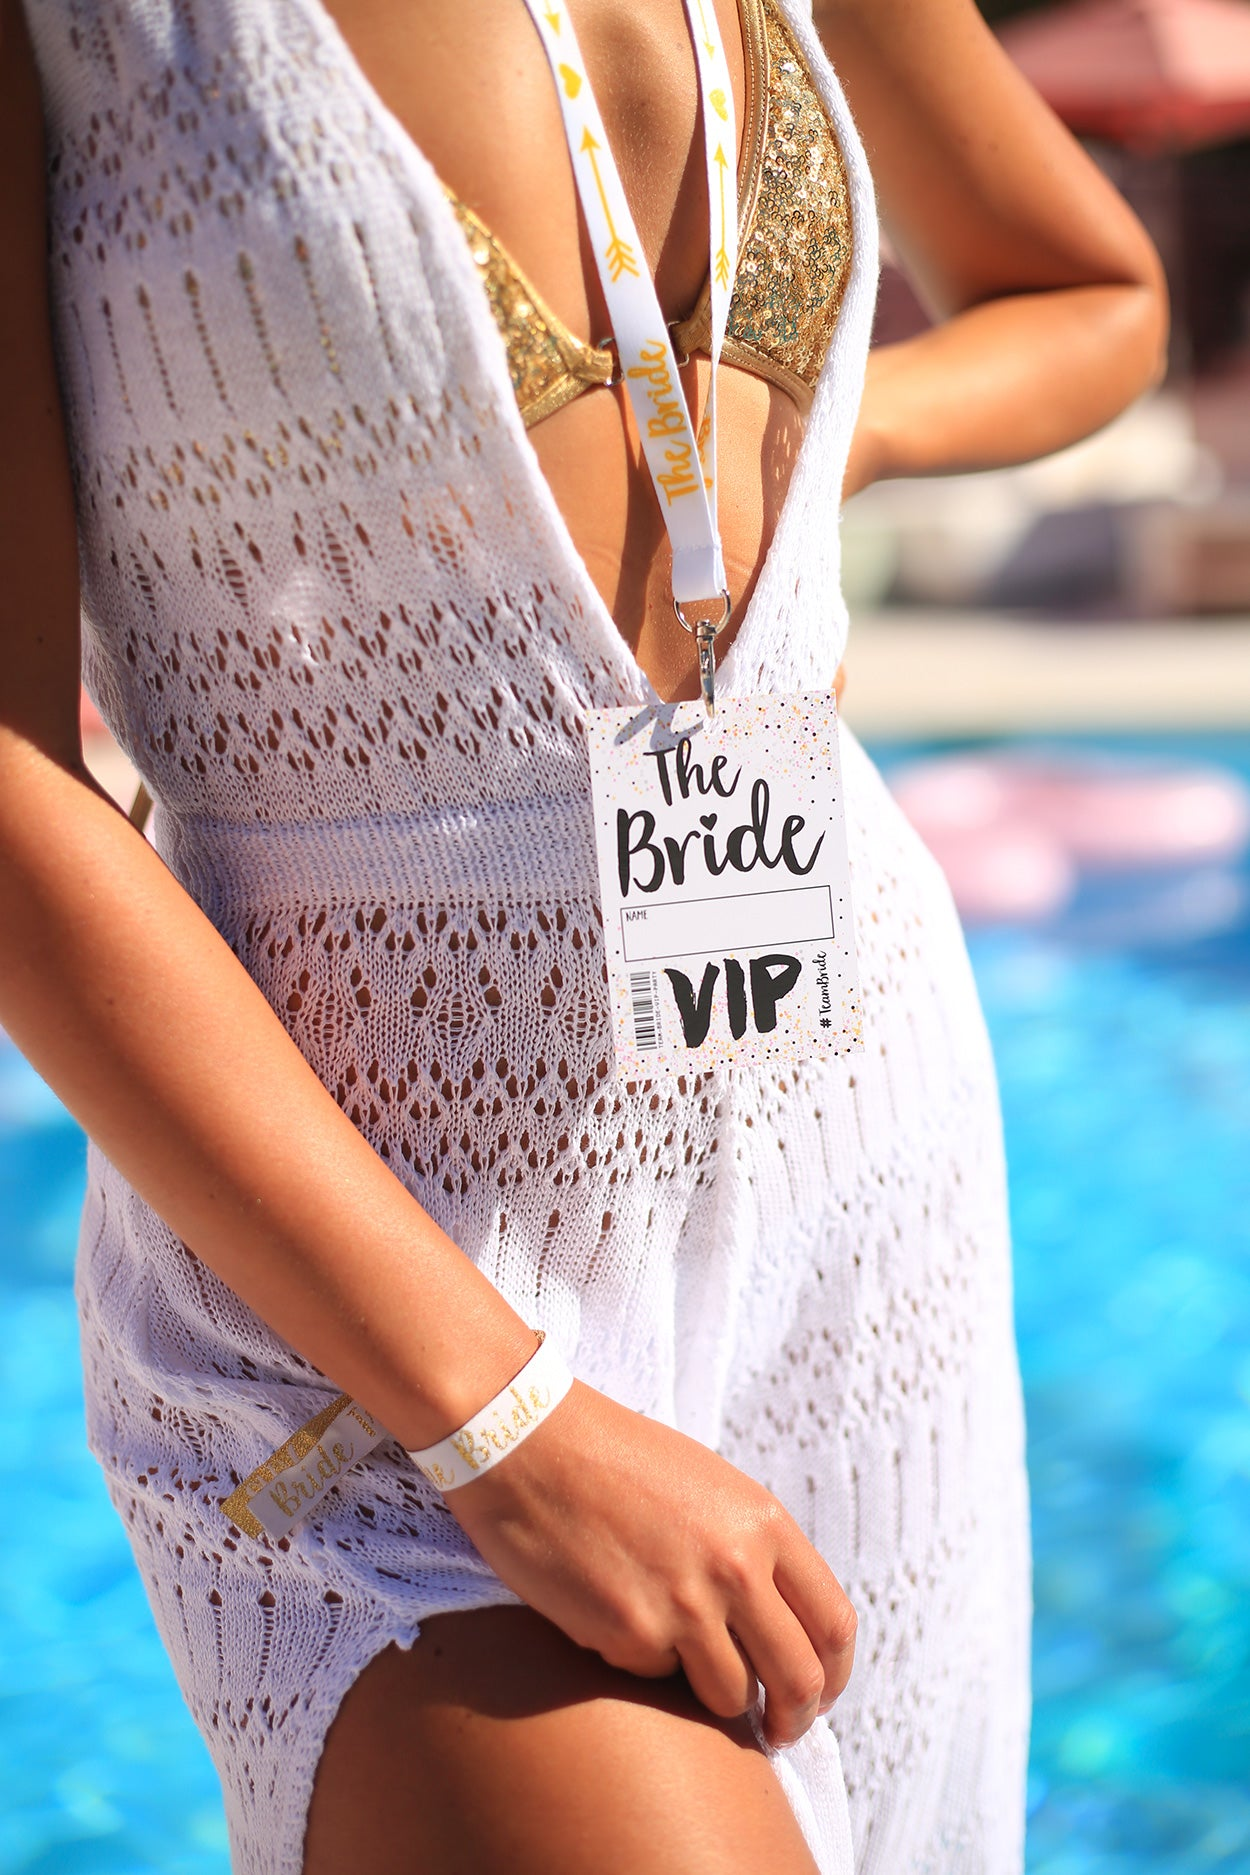 bride to be hen party vip pass lanyard wiki woo hotel ibiza